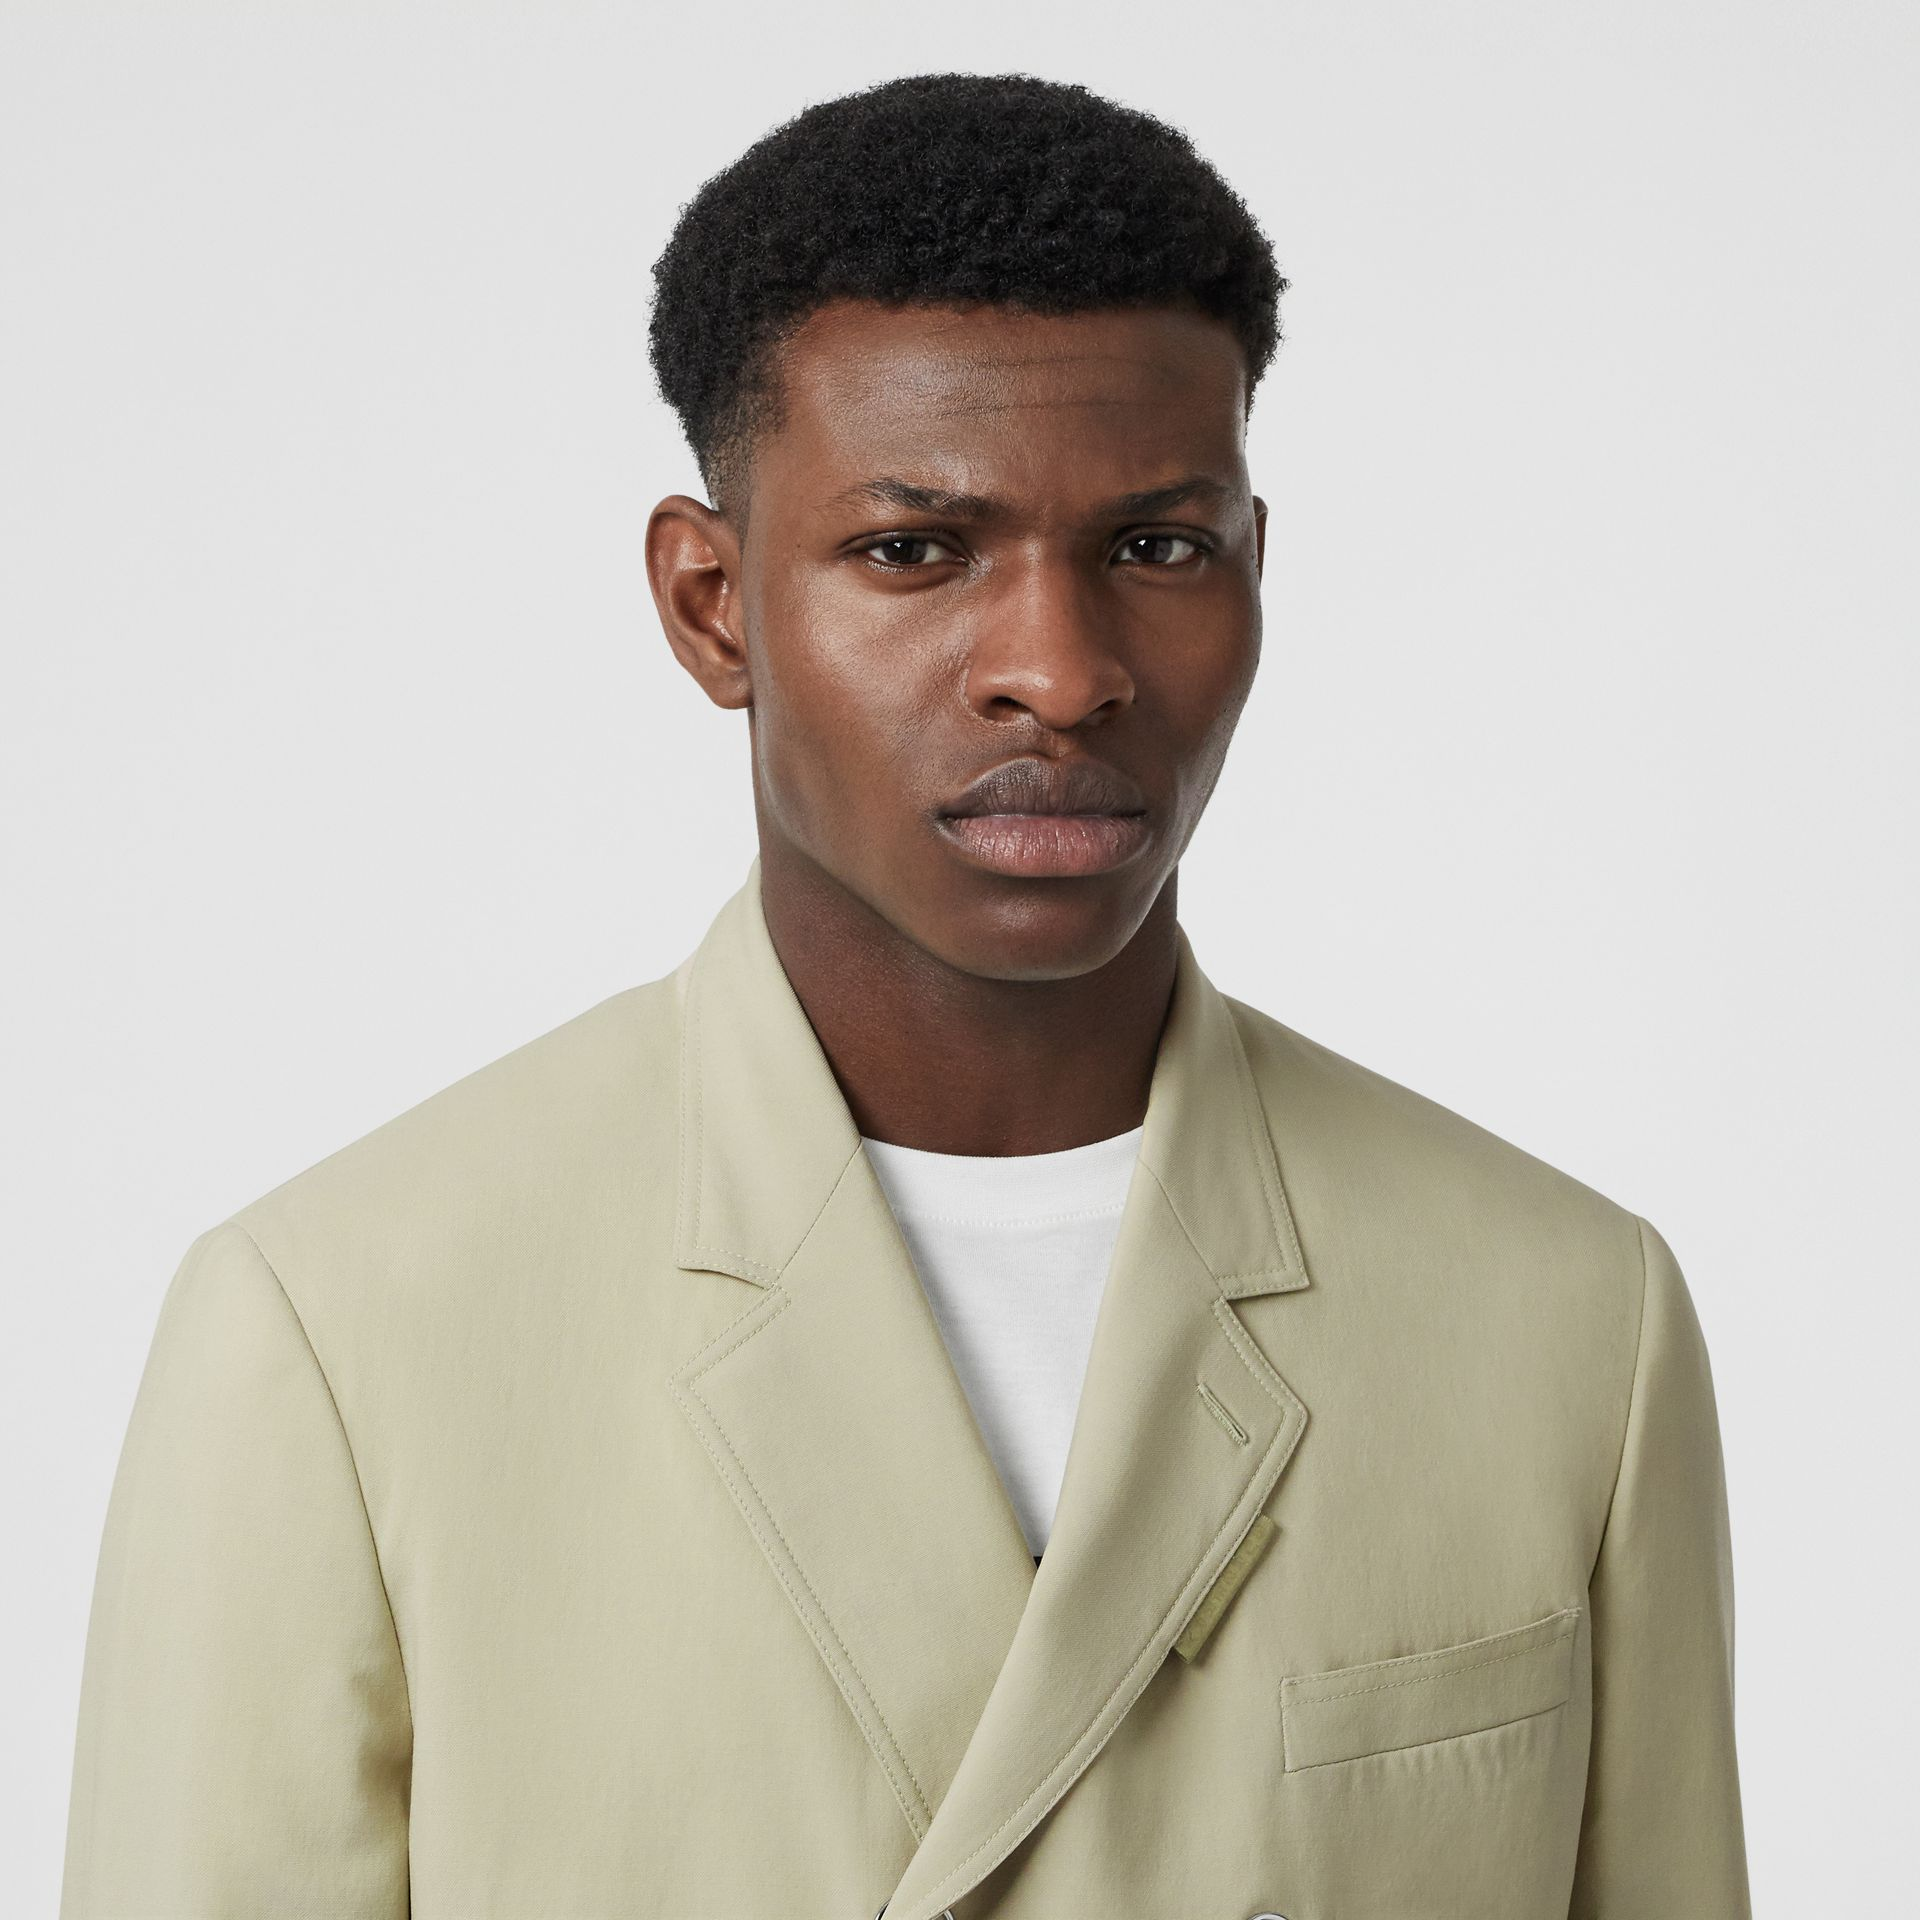 Slim Fit Press-stud Wool Tailored Jacket in Matcha | Burberry - gallery image 9